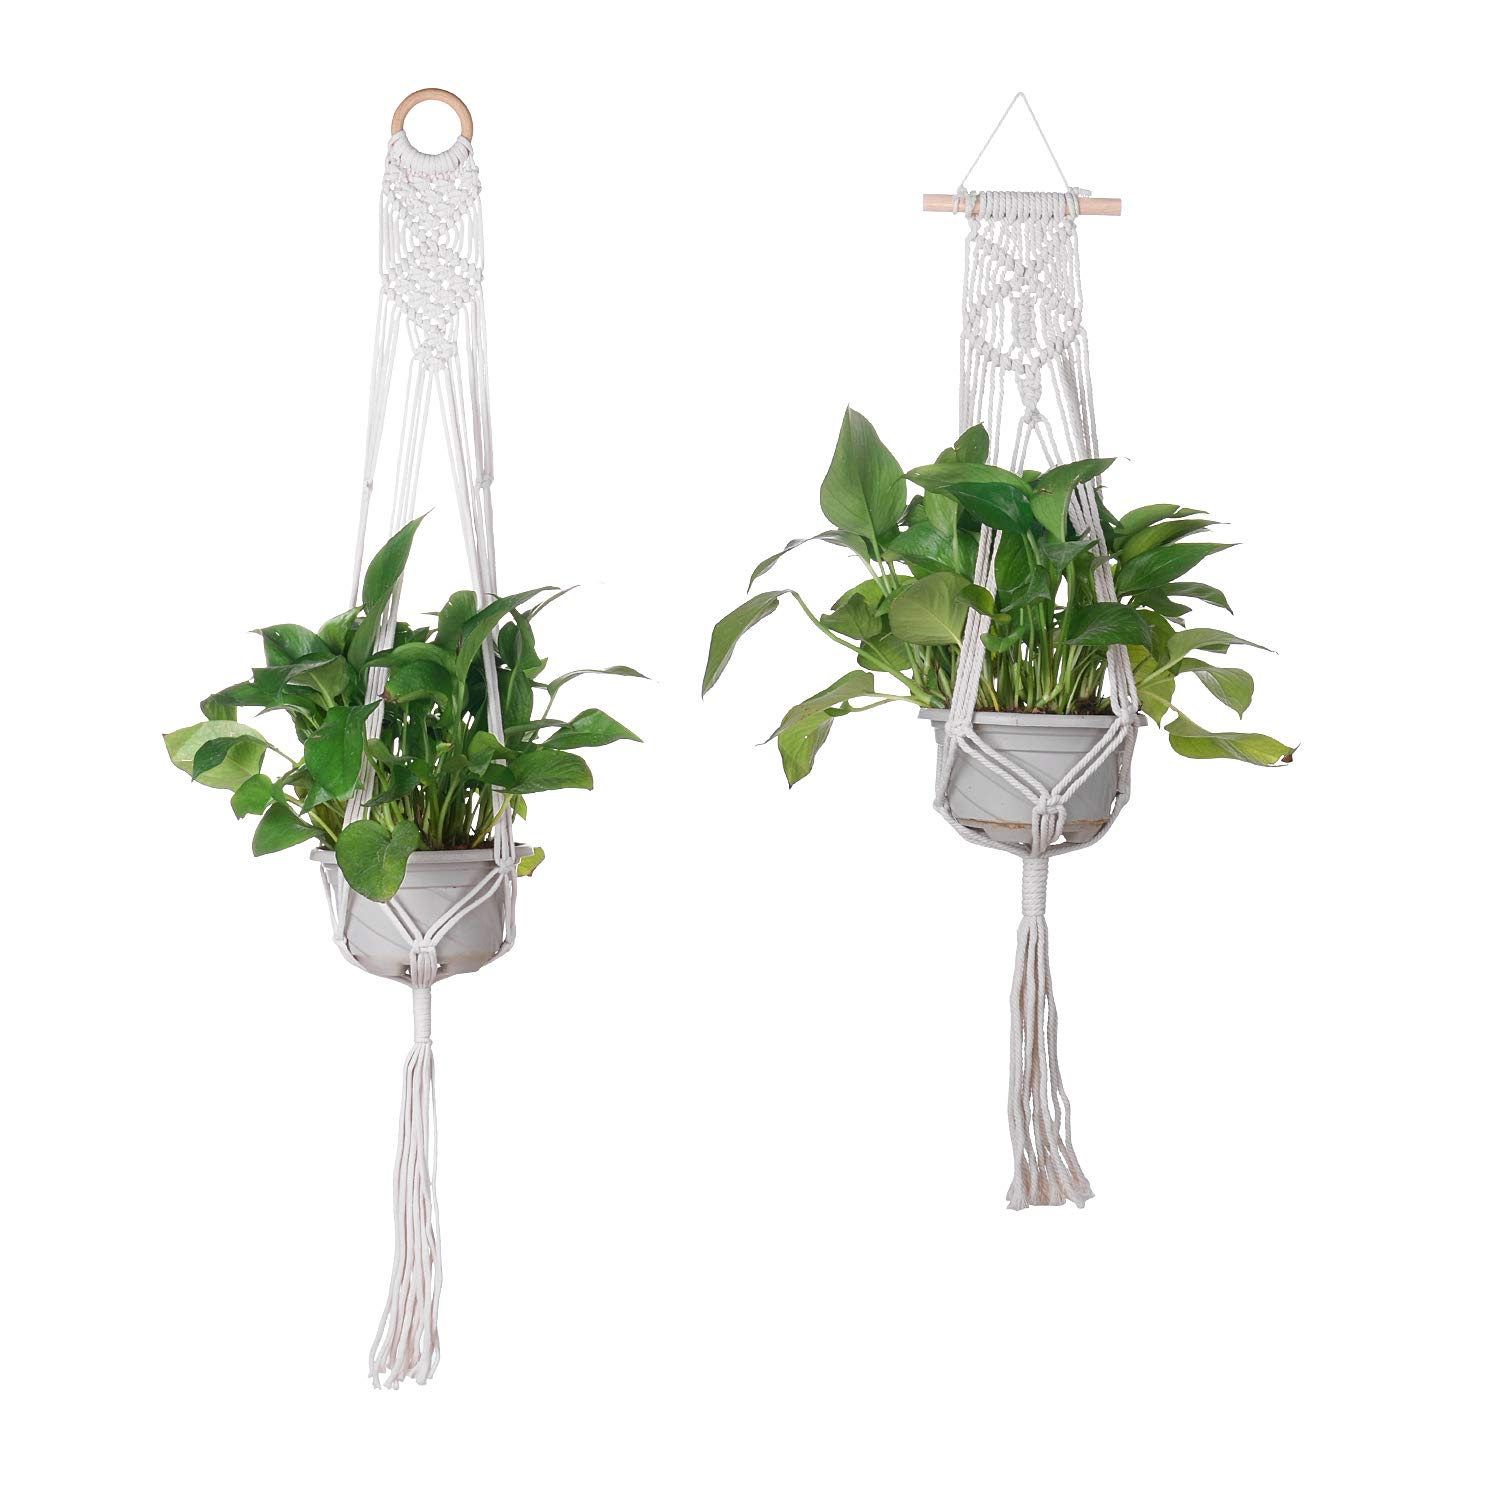 Rope Hanging Planter, Set of 2pcs Macrame Plant Hanger Cotton Rope Indoor Cotton Rope Hanging Planter Basket, Large Small Wall Hanging Plant Holders, Indoor Macrame Plant Hanger 2PCS